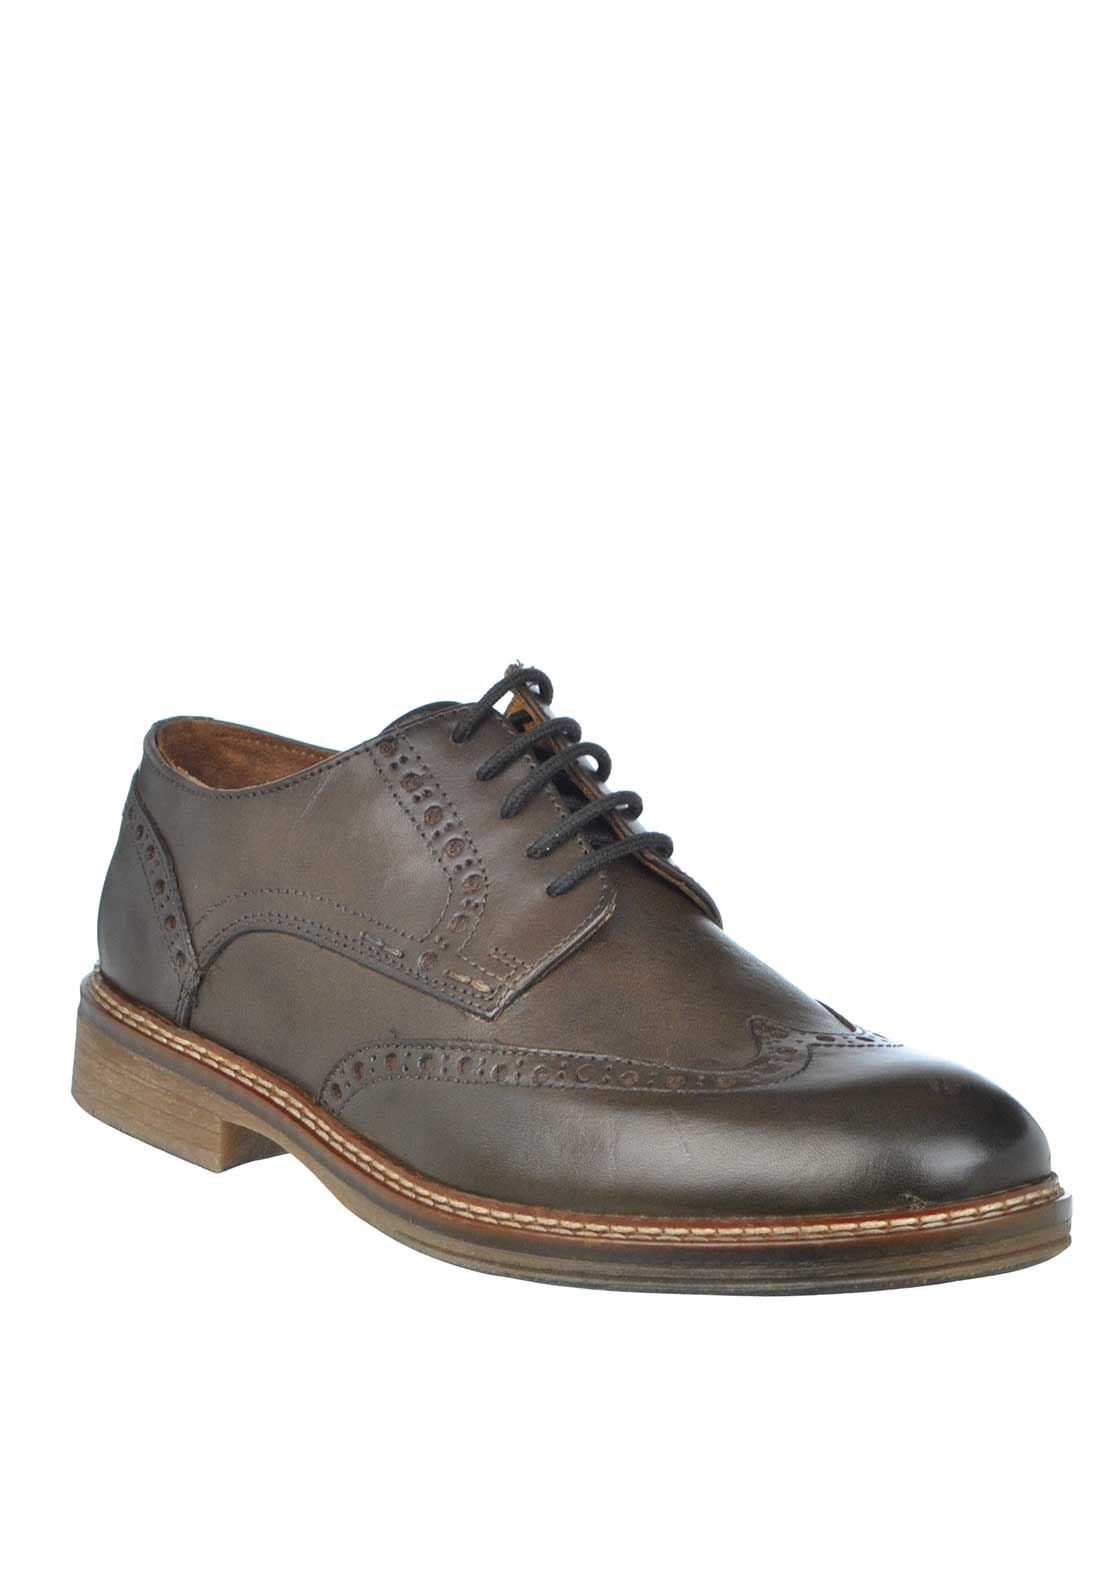 Dubarry Stefan Leather Lace Up Brogue Shoe, Mahogany Brown